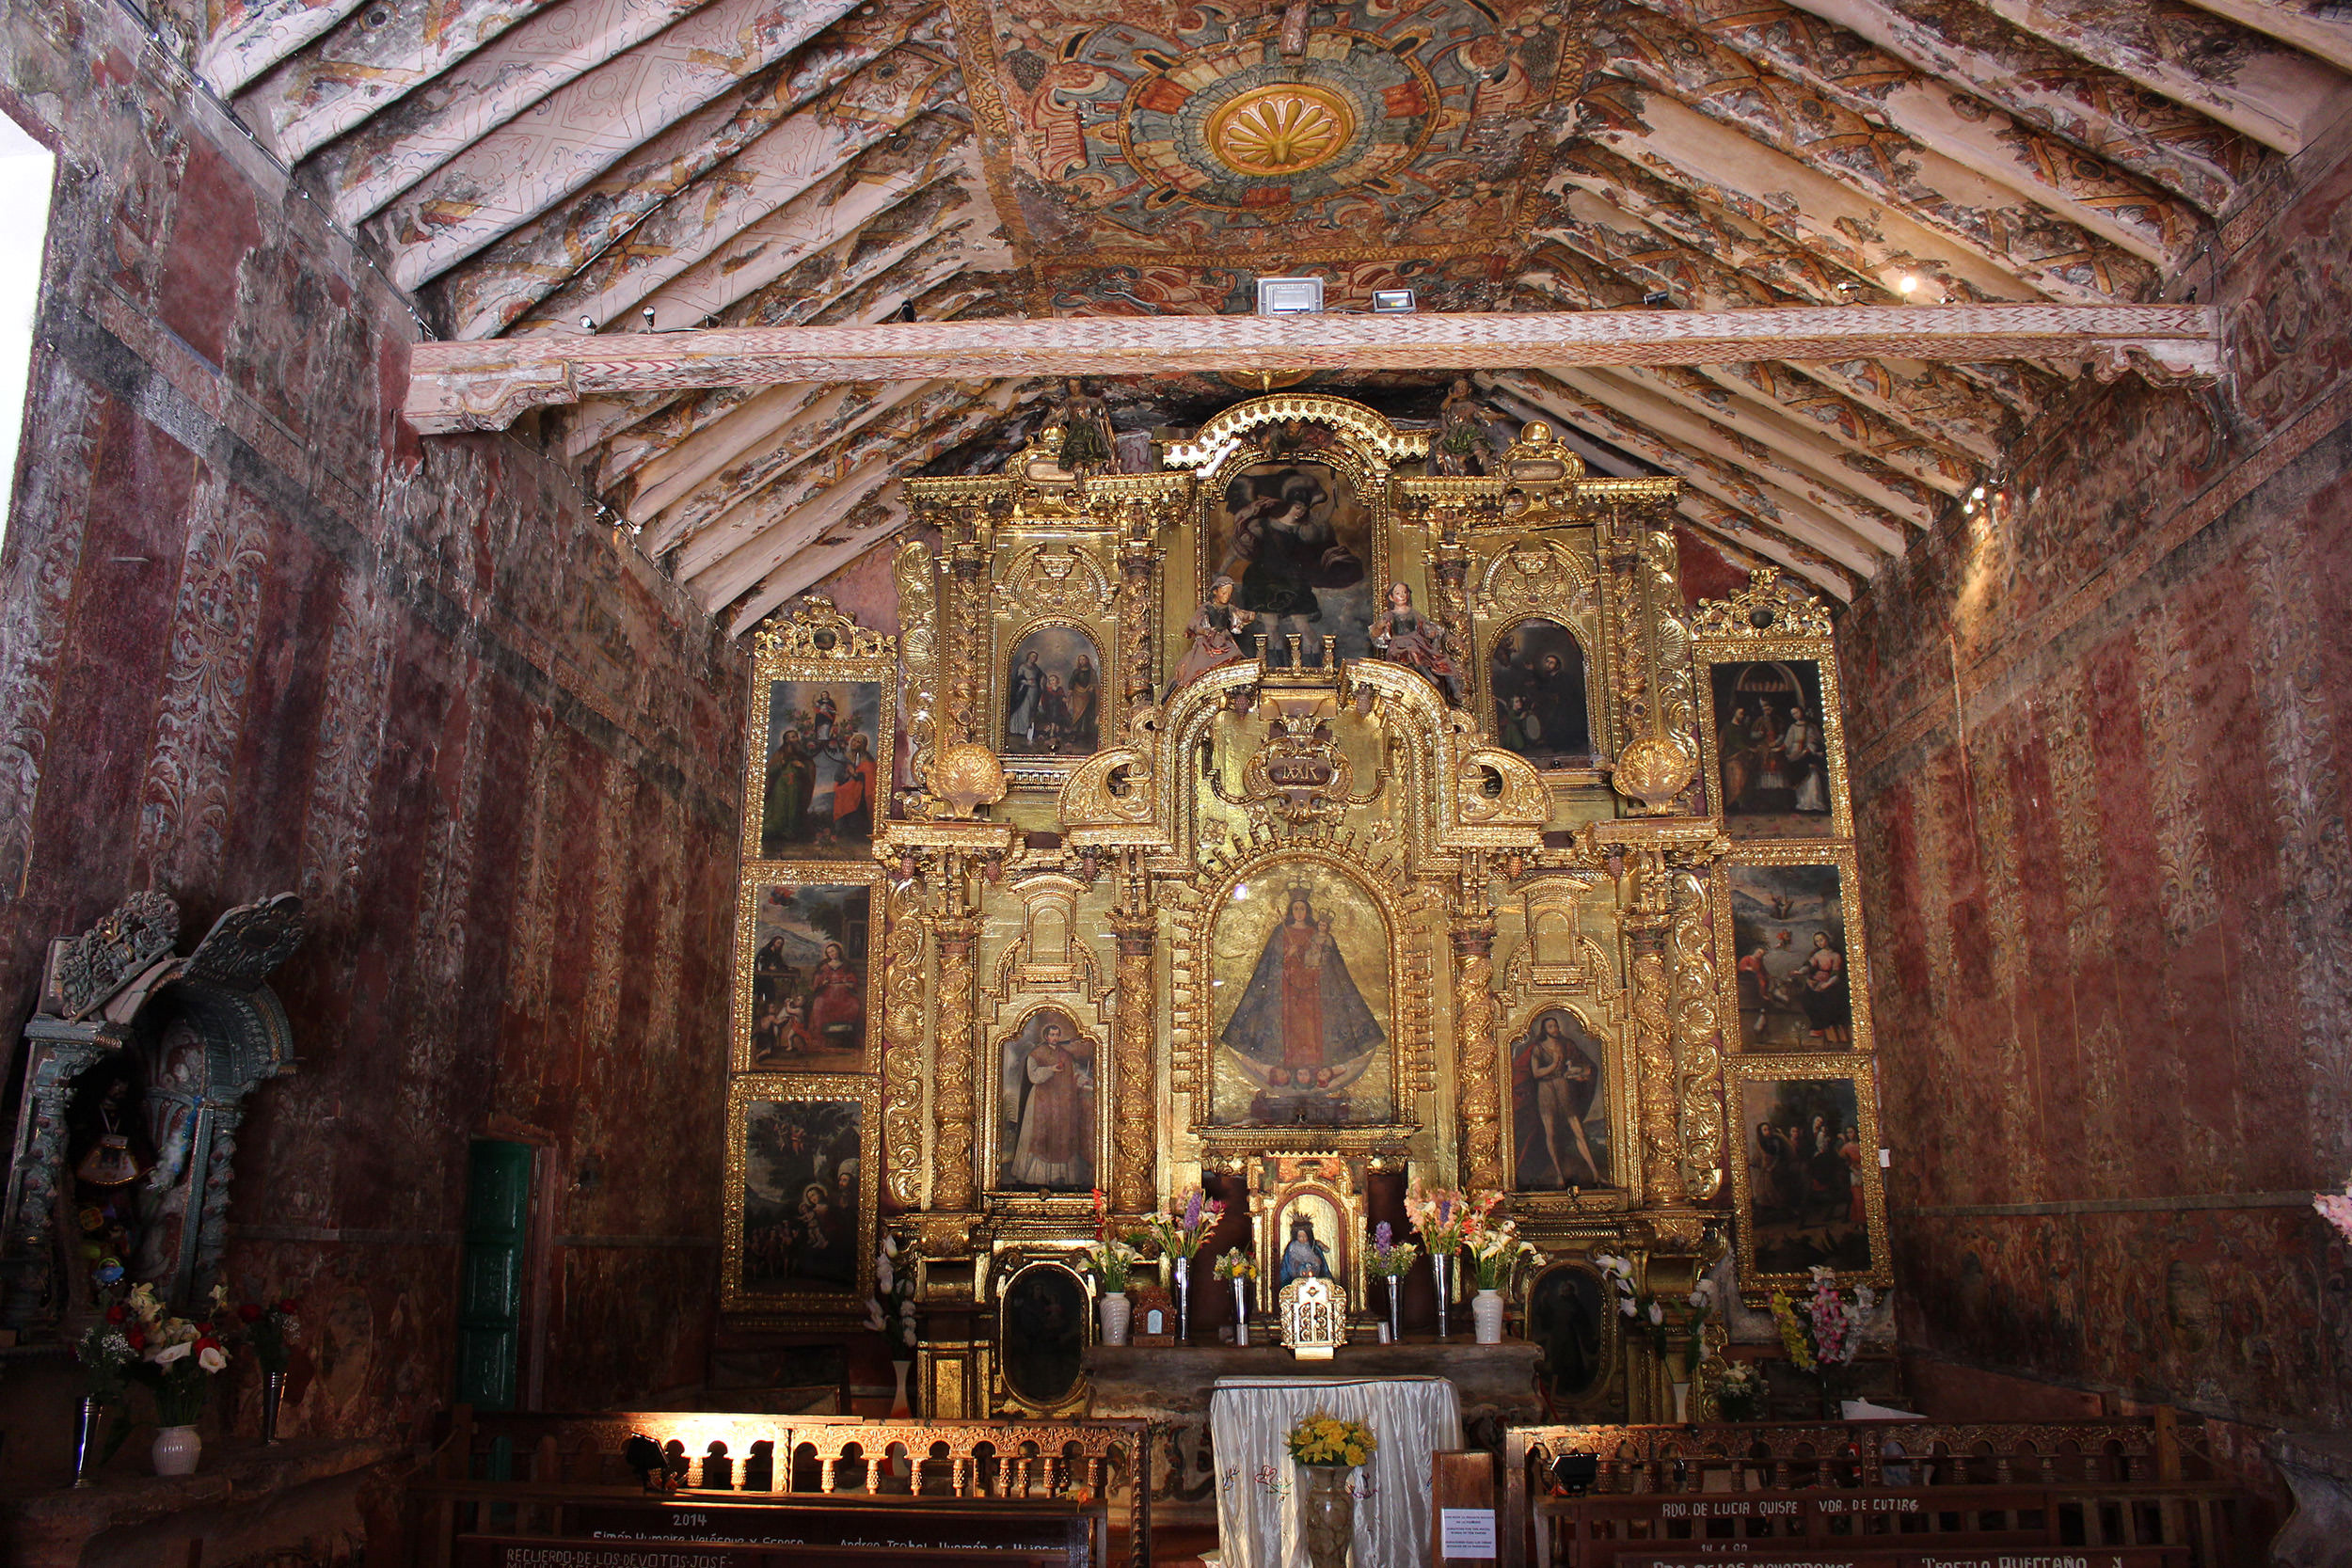 Fig. 11 Interior of the Capilla de Nuestra Señora de la Candelaria de Canincunca decorated with painted damasks, late 17th or early 18th century, Quispicanchi Province. Photo by author.